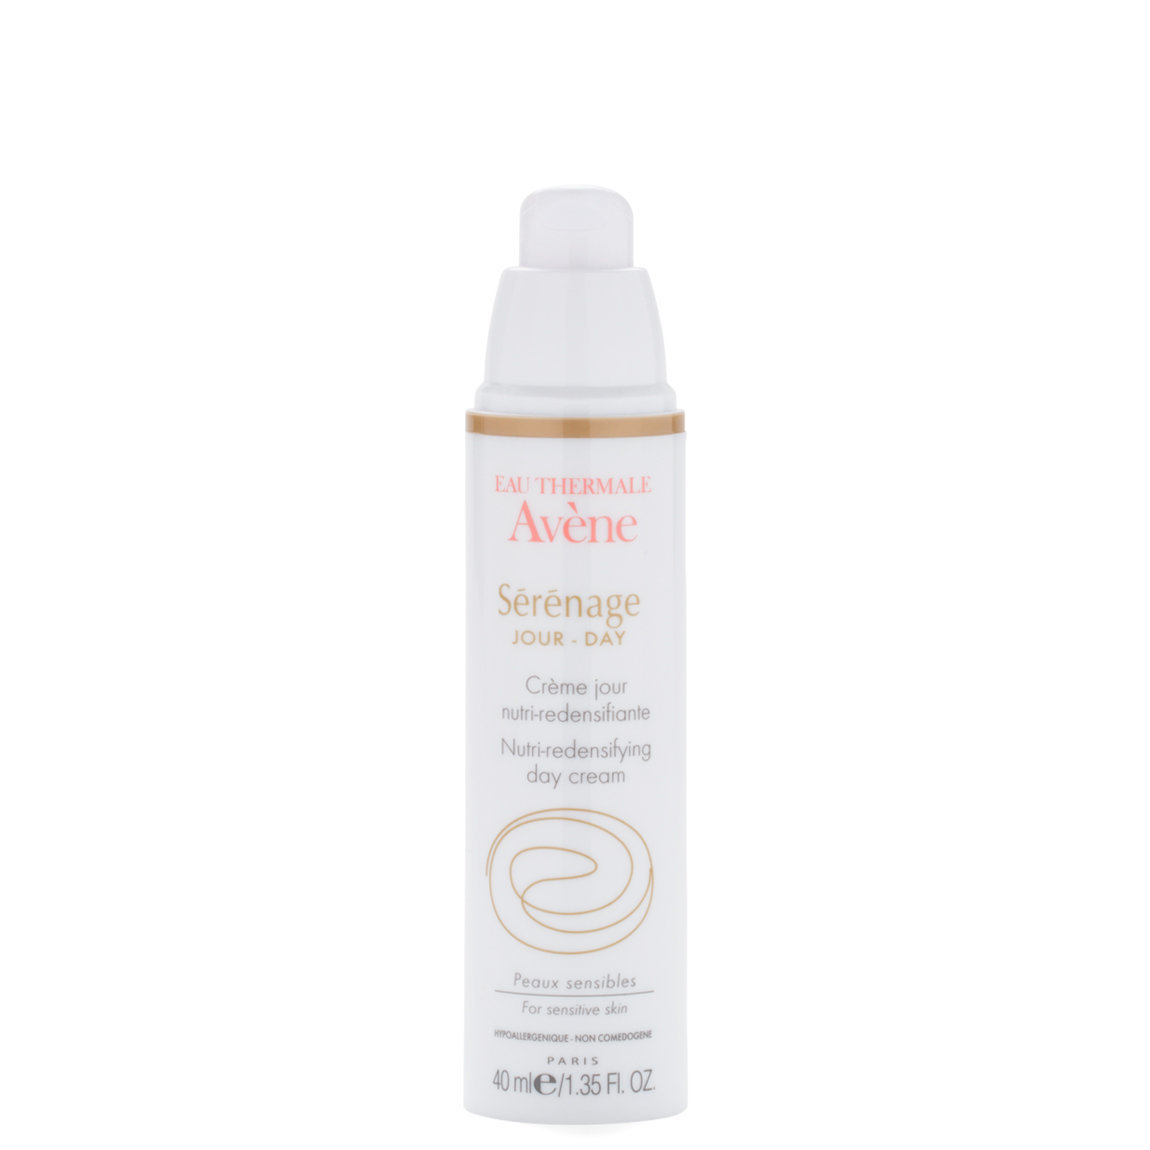 Eau Thermale Avène Serenage Nutri-Redensifying Day Cream